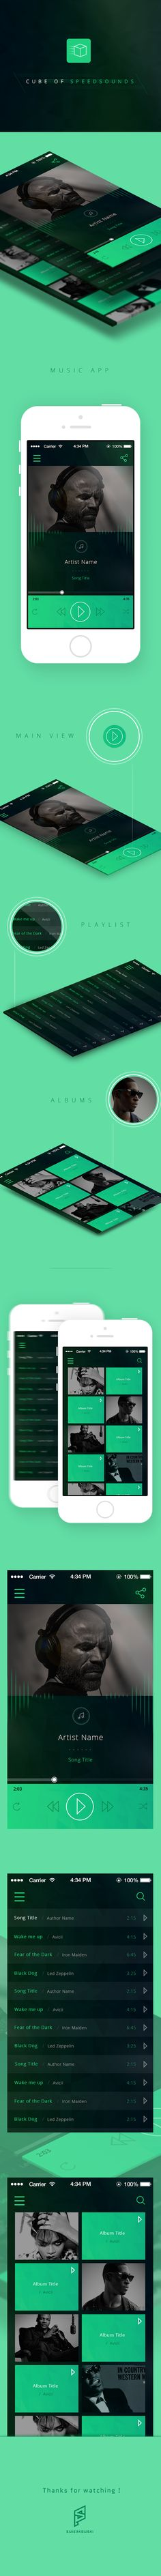 Cube of SpeedSounds - Music App Web Design Studio, Creative Web Design, Ui Ux Design, Gui Interface, User Interface Design, Mobile Web Design, Music App, Ui Design Inspiration, User Experience Design